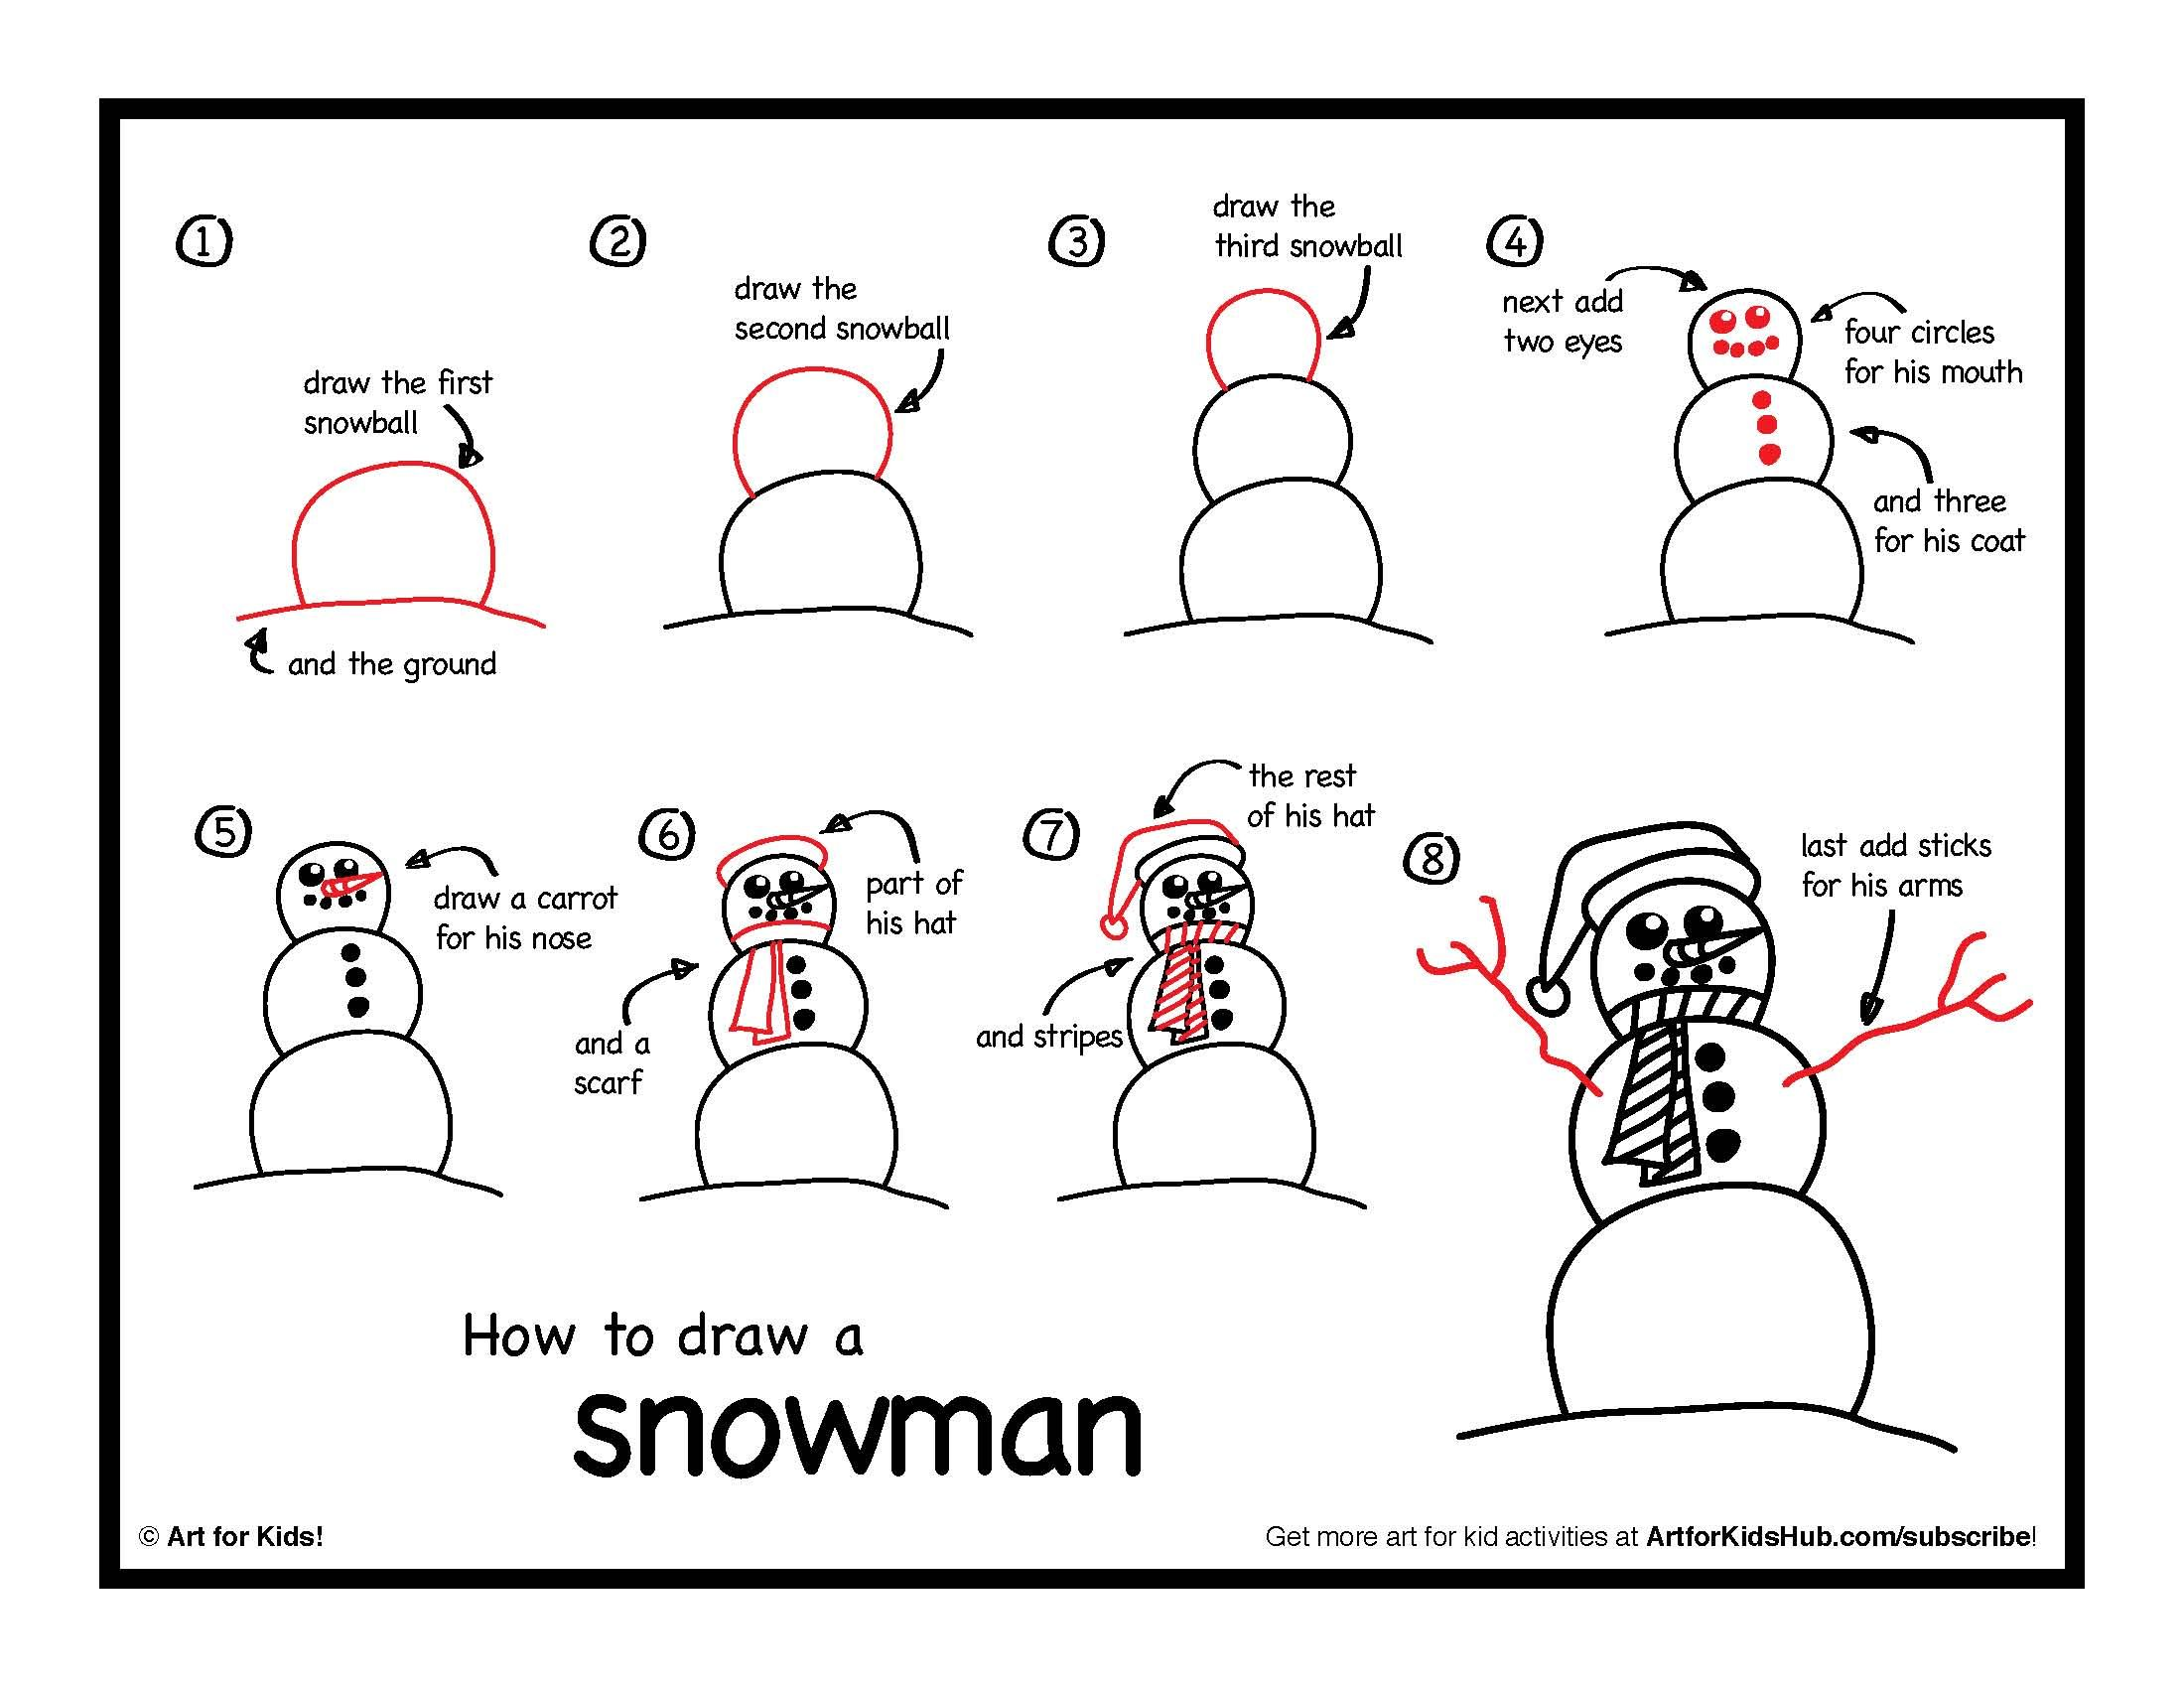 How To Draw A Snowman - Art For Kids Hub - | Snowman ...